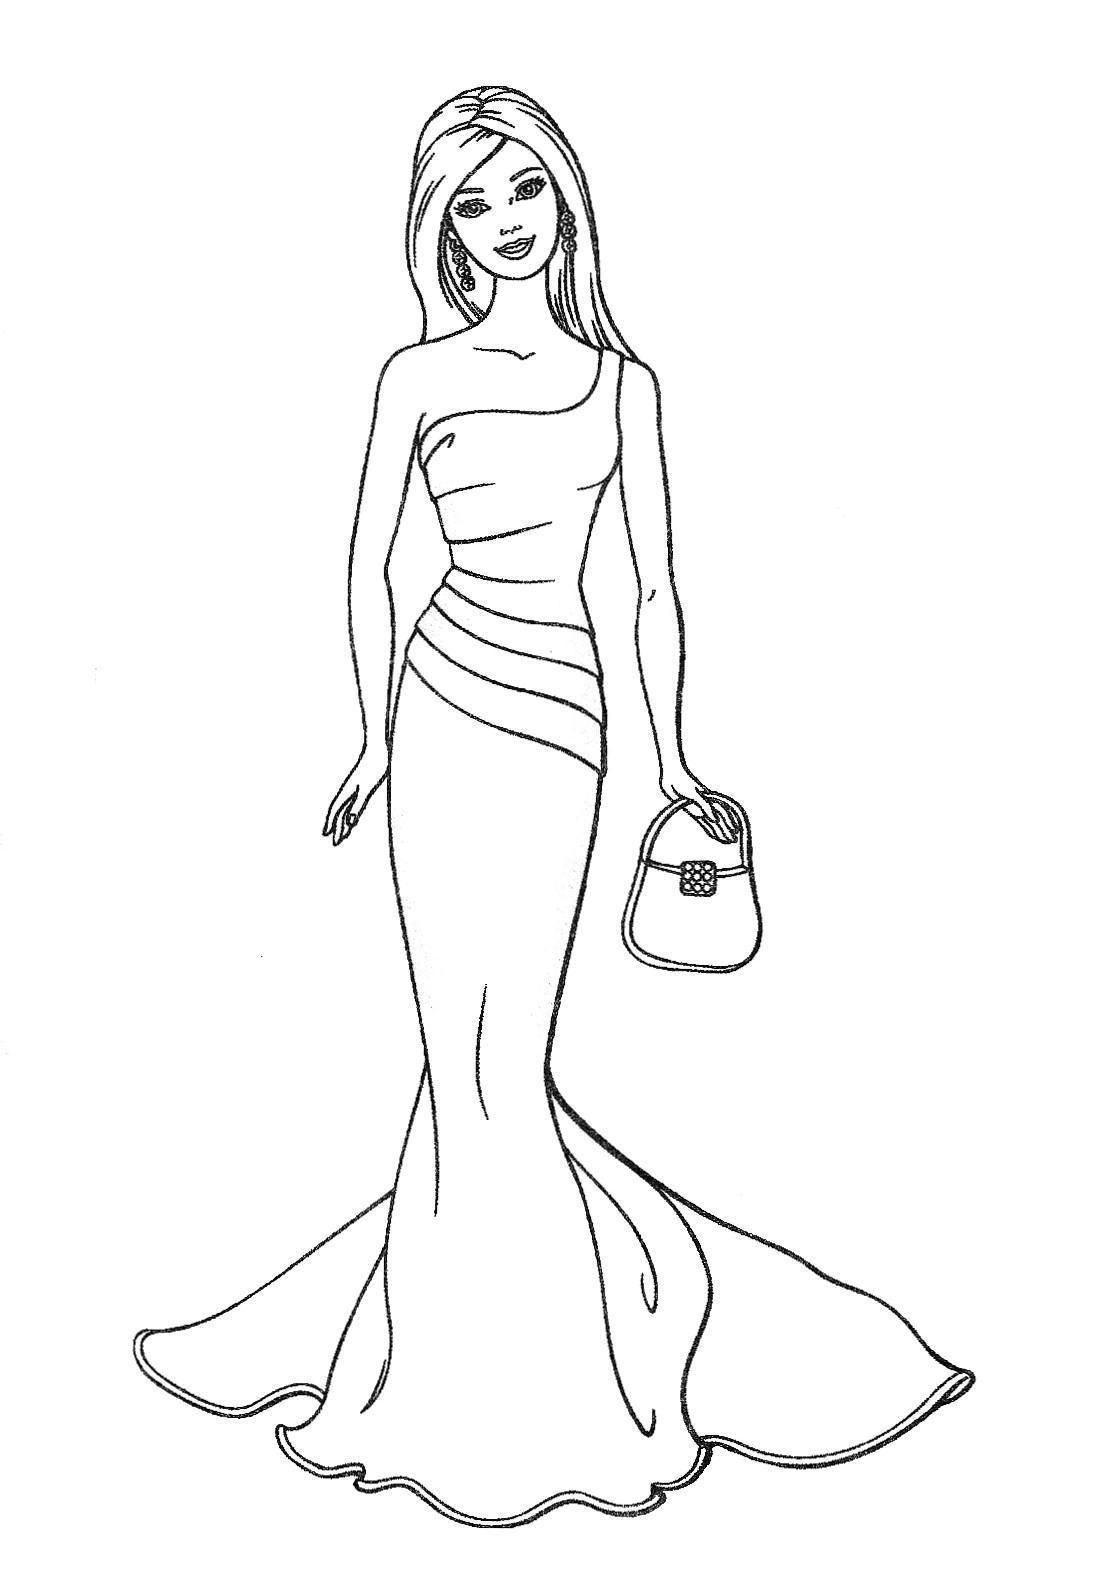 Barbie Movies Photo Barbie Coloring Pages Barbie Coloring Pages Barbie Drawing Princess Coloring Pages